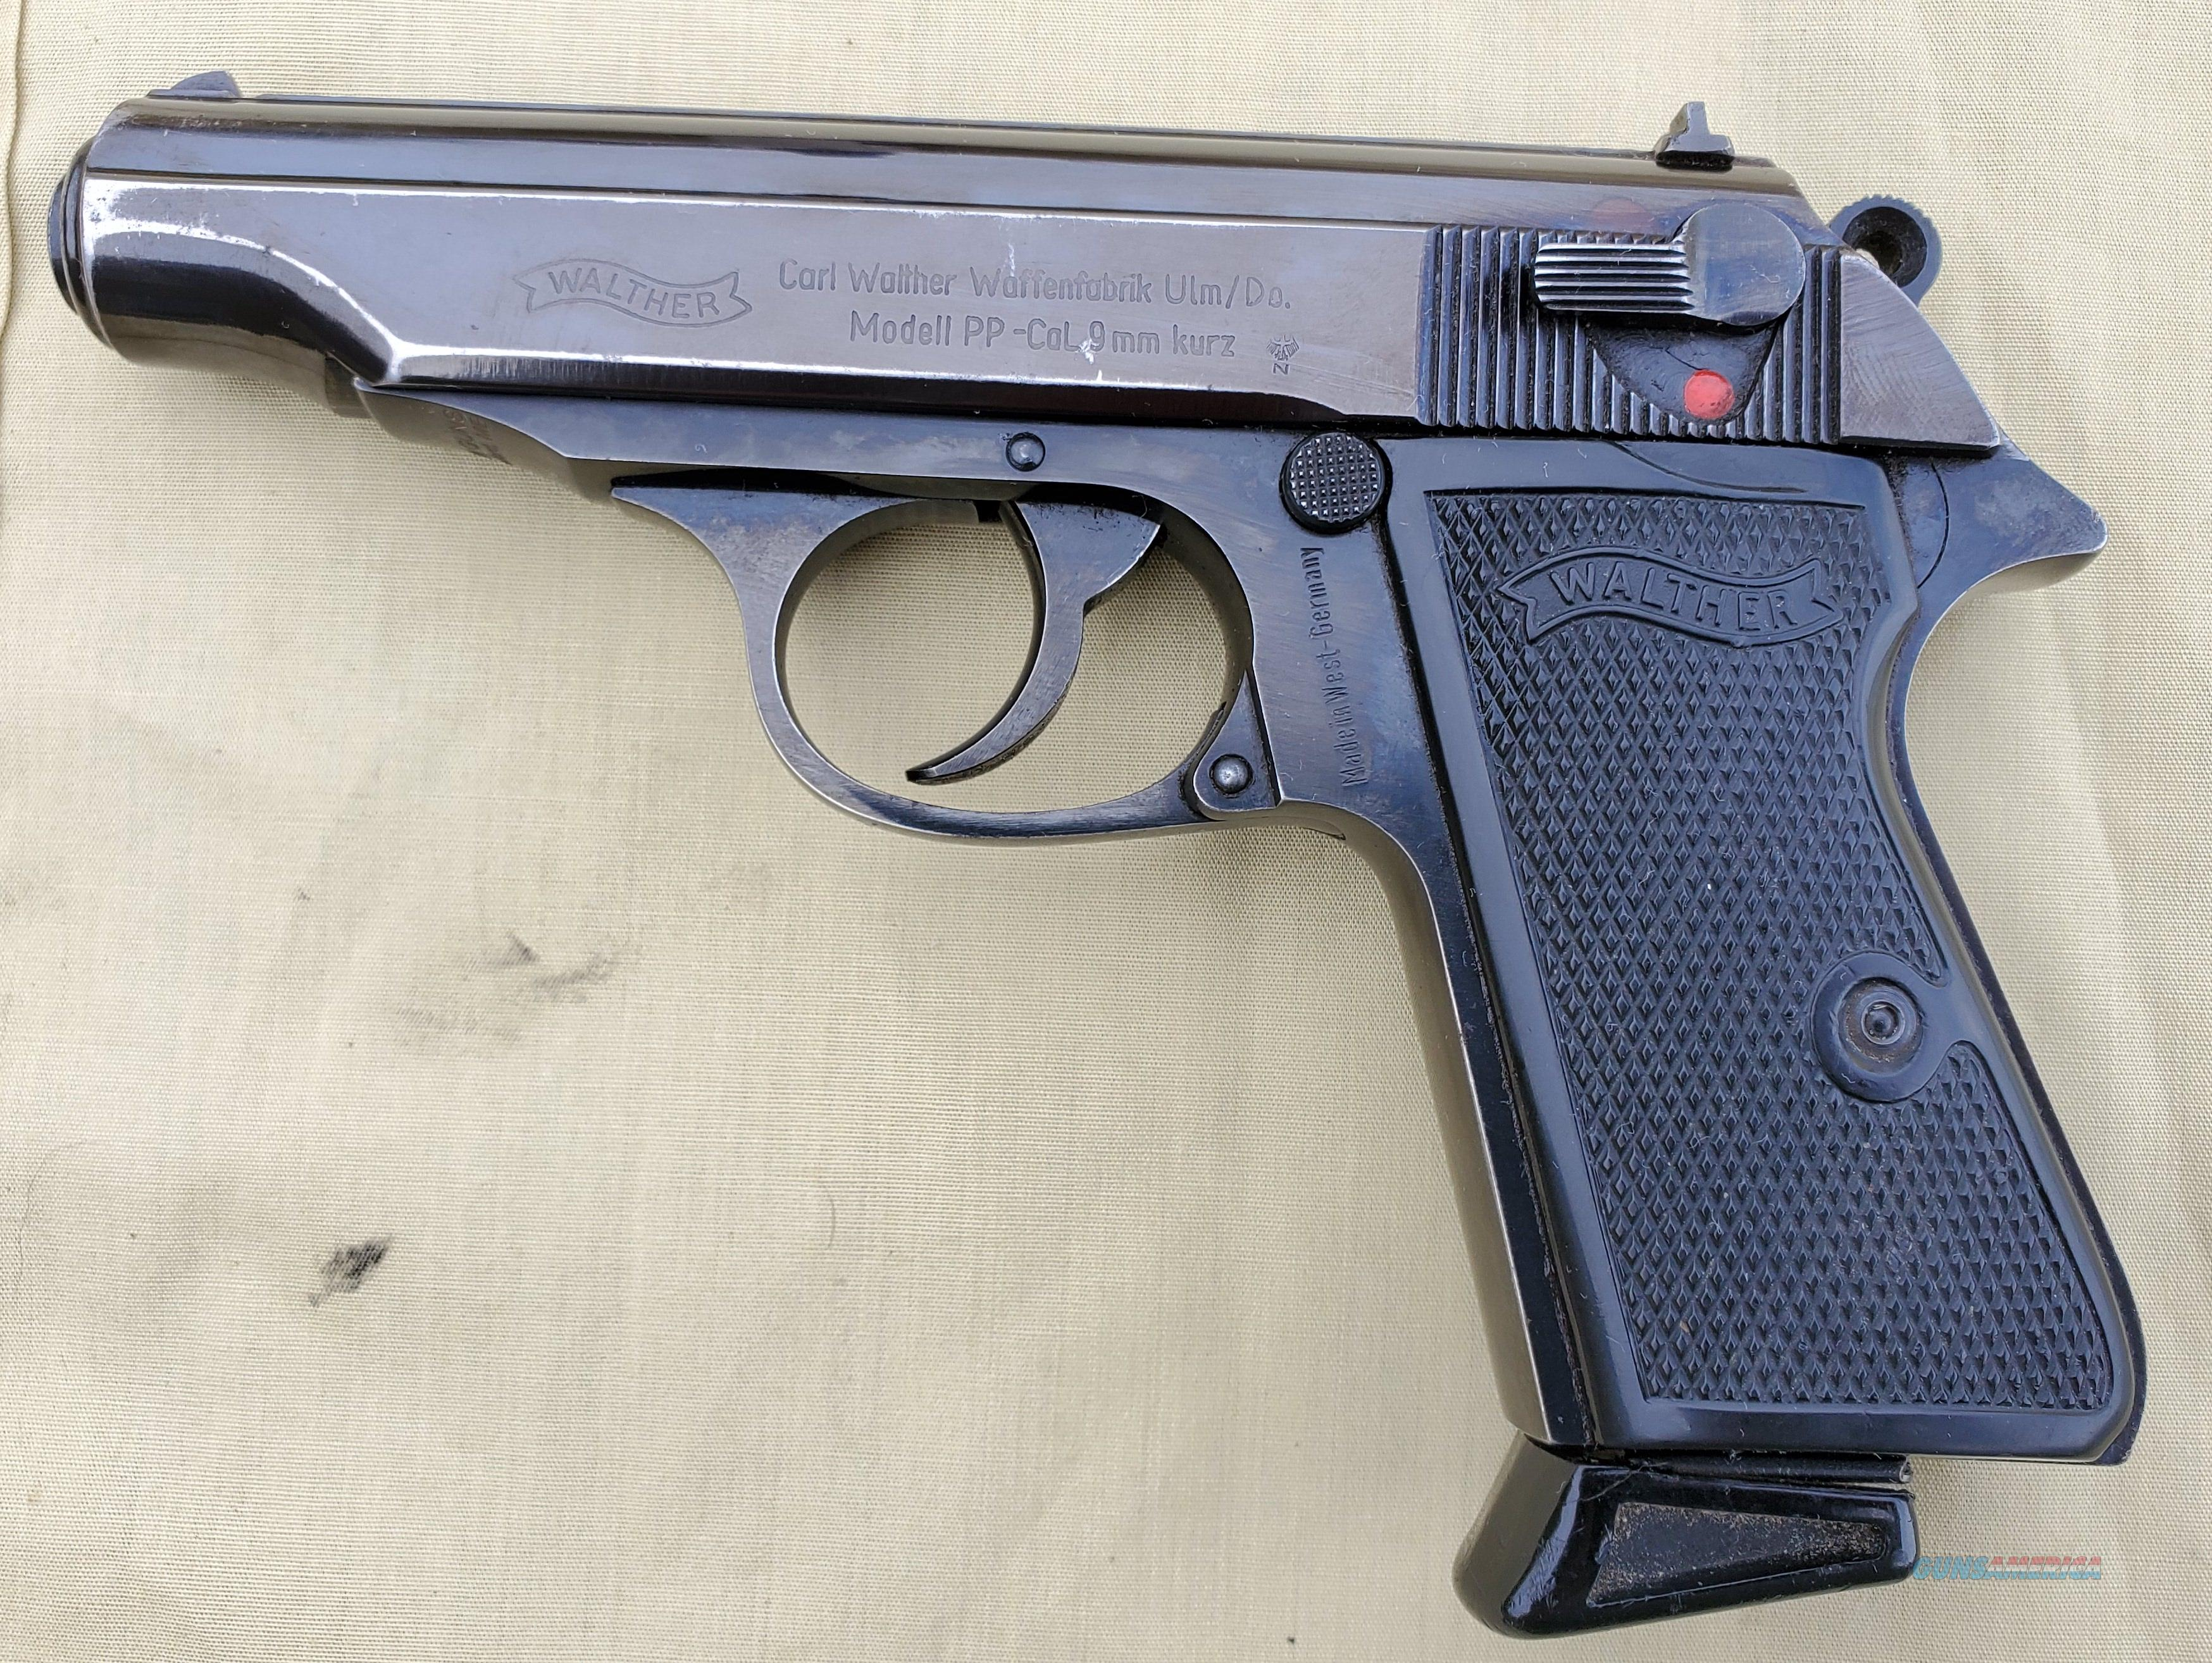 WTS Walther PP .380/9mmk  Guns > Pistols > Walther Pistols > Post WWII > PPK Series